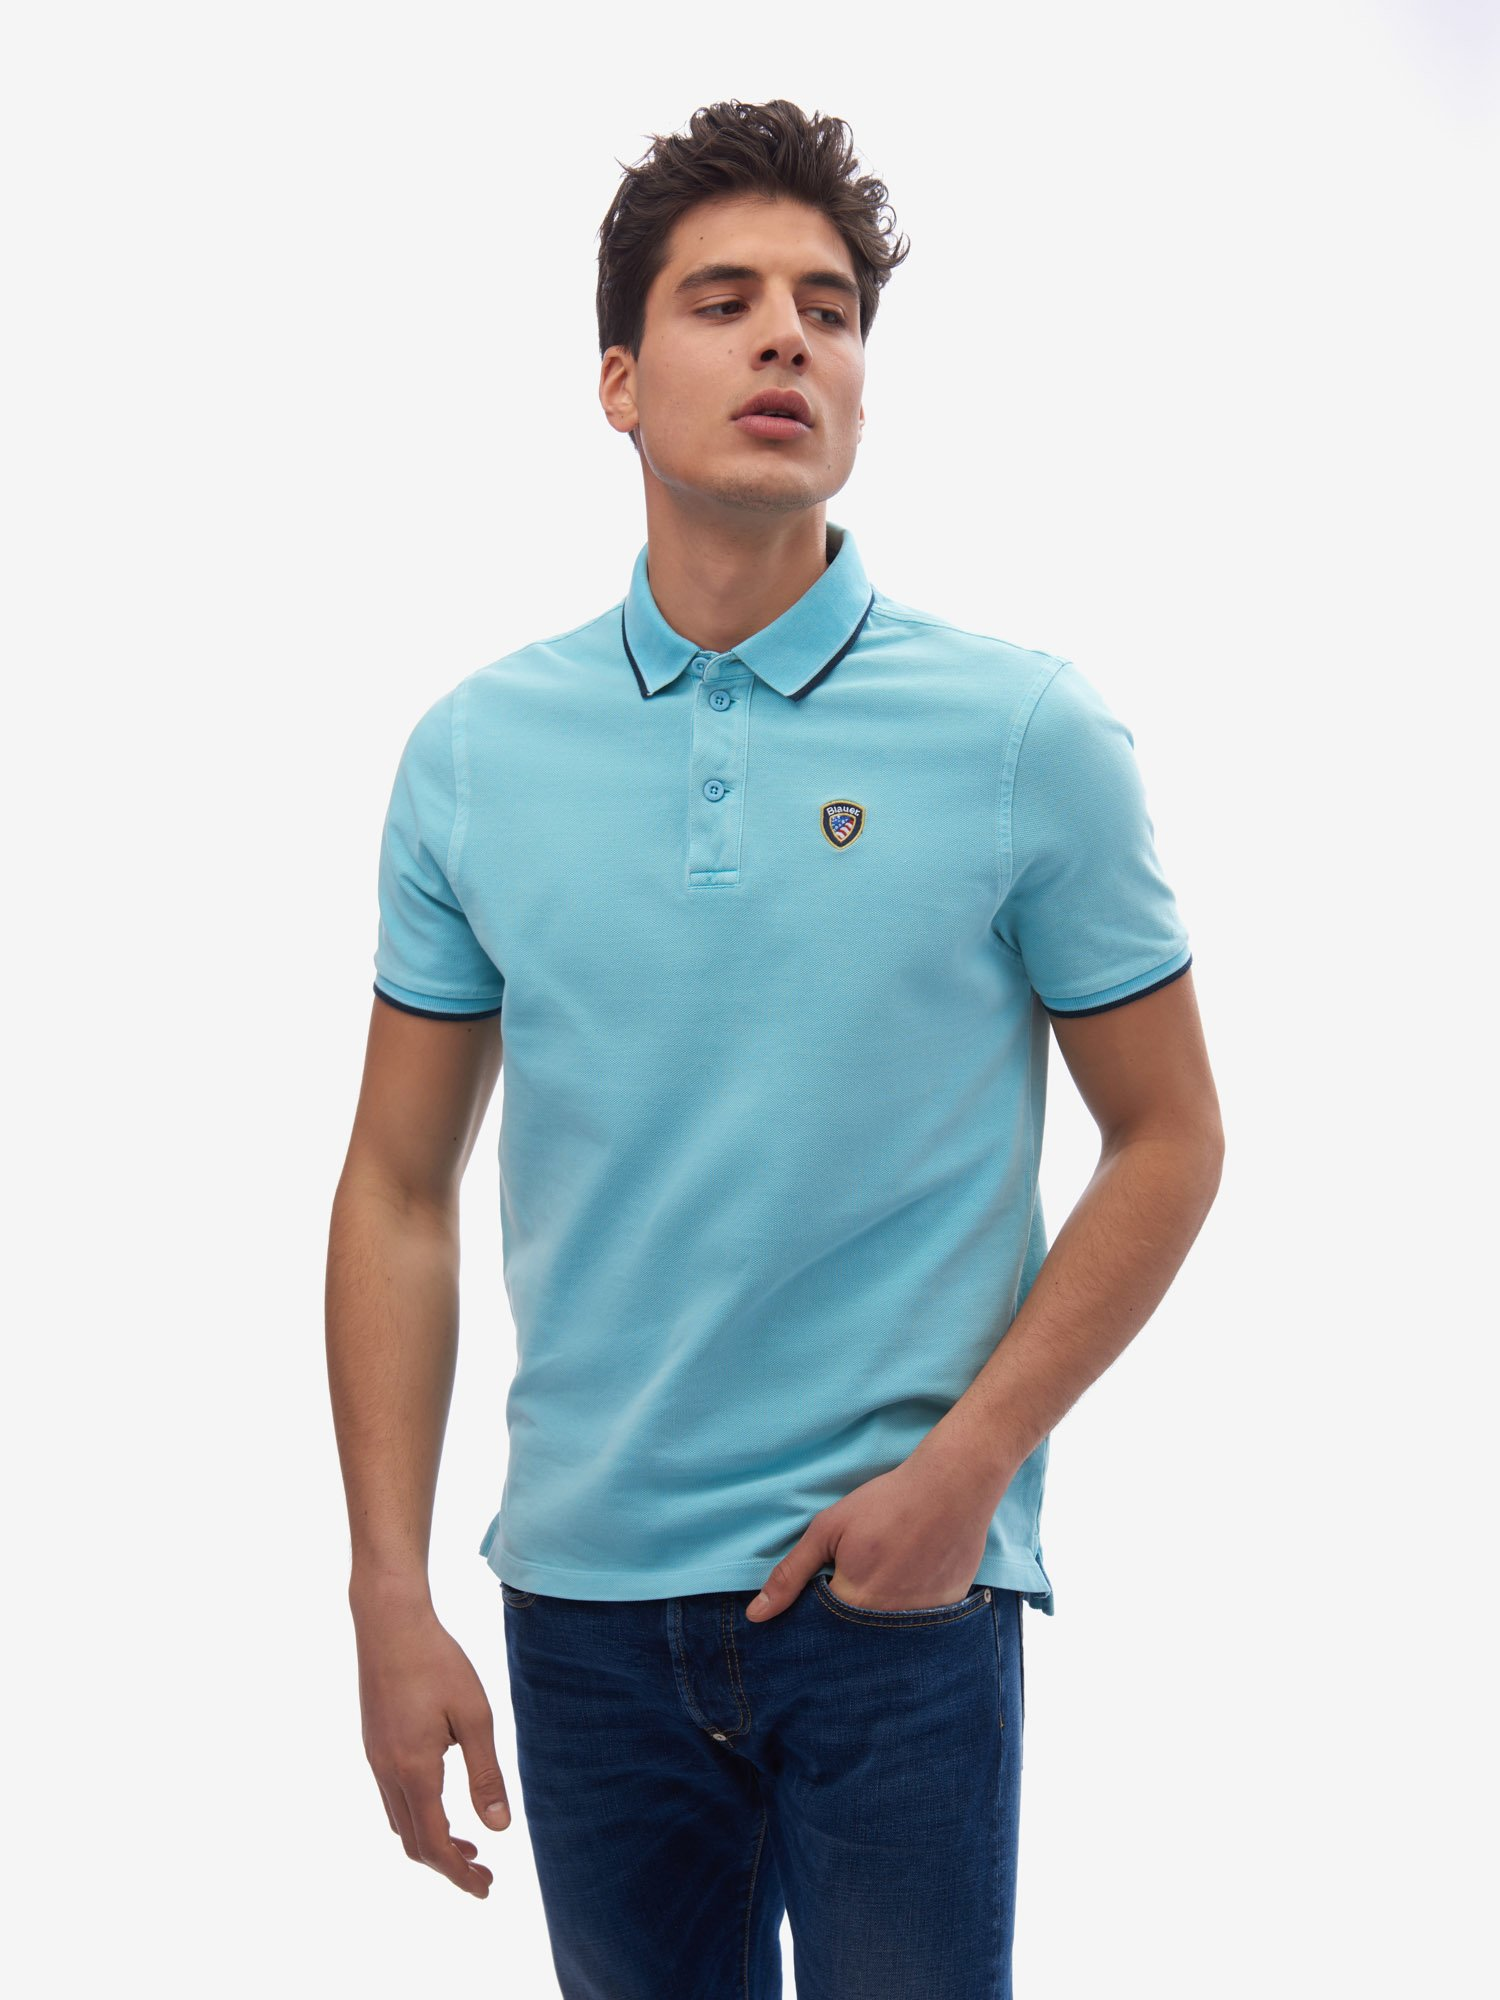 POLO  BLAUER OLD STYLE - Blauer